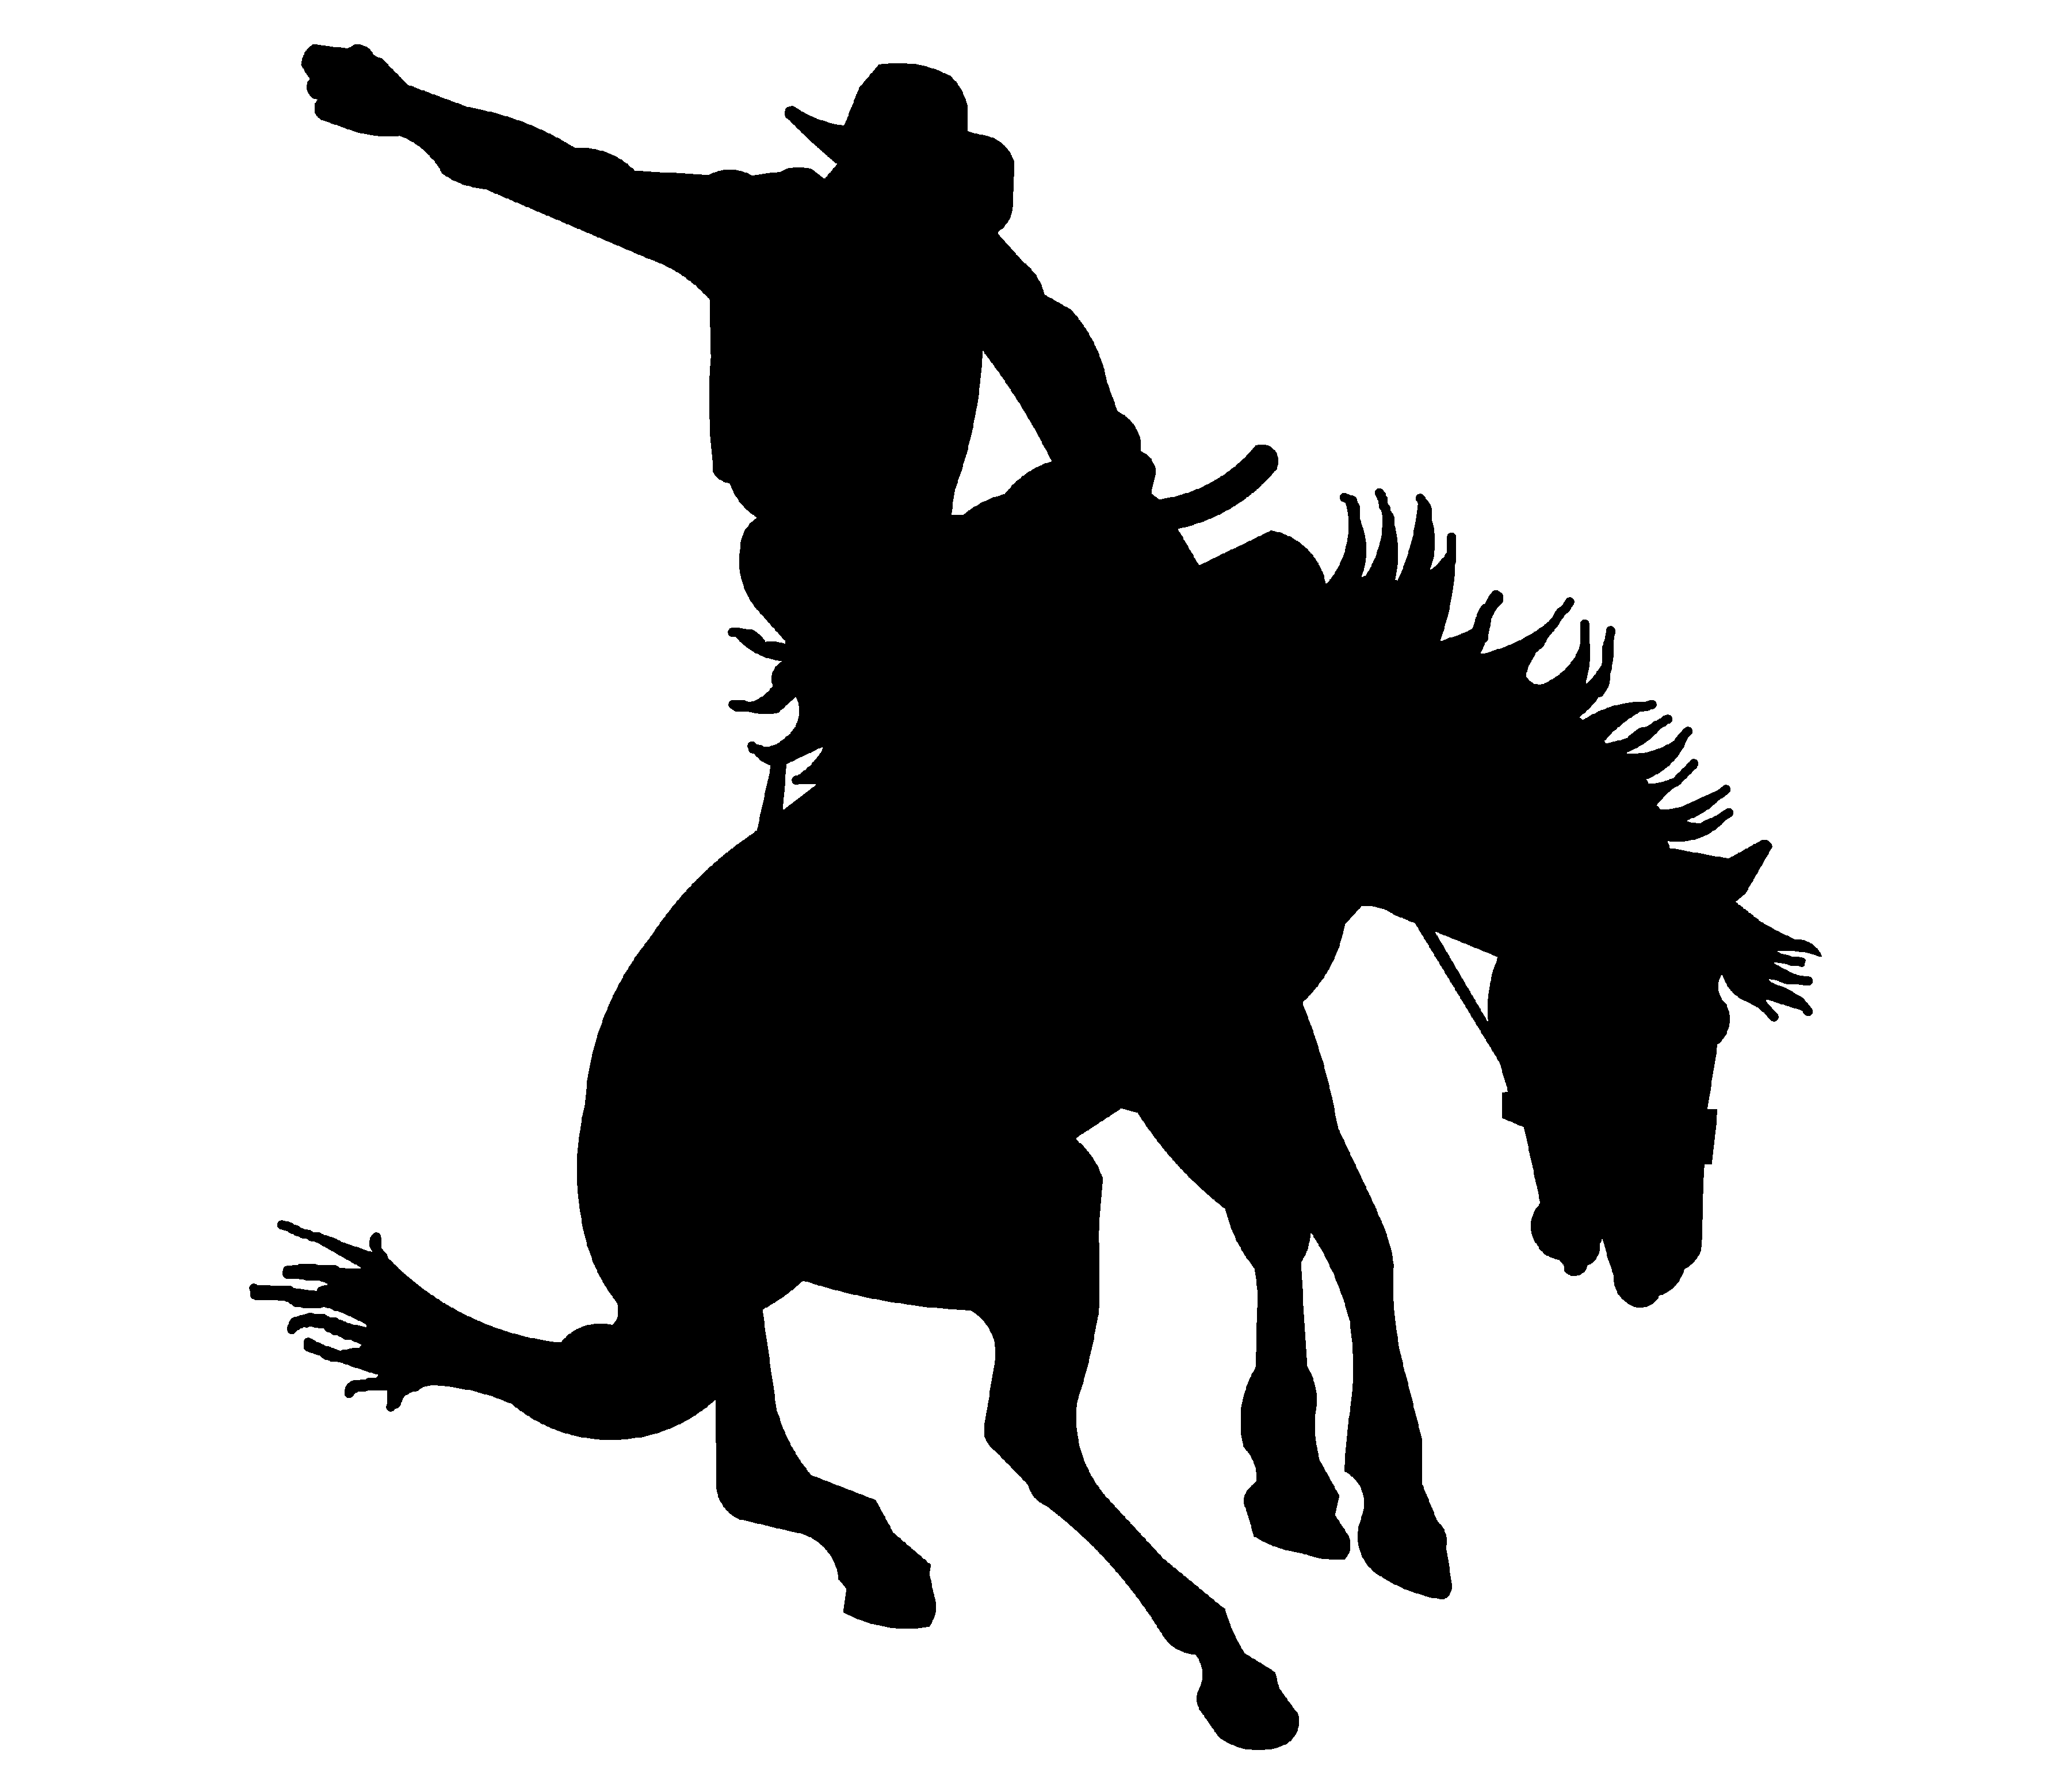 medium resolution of discover ideas about horse silhouette